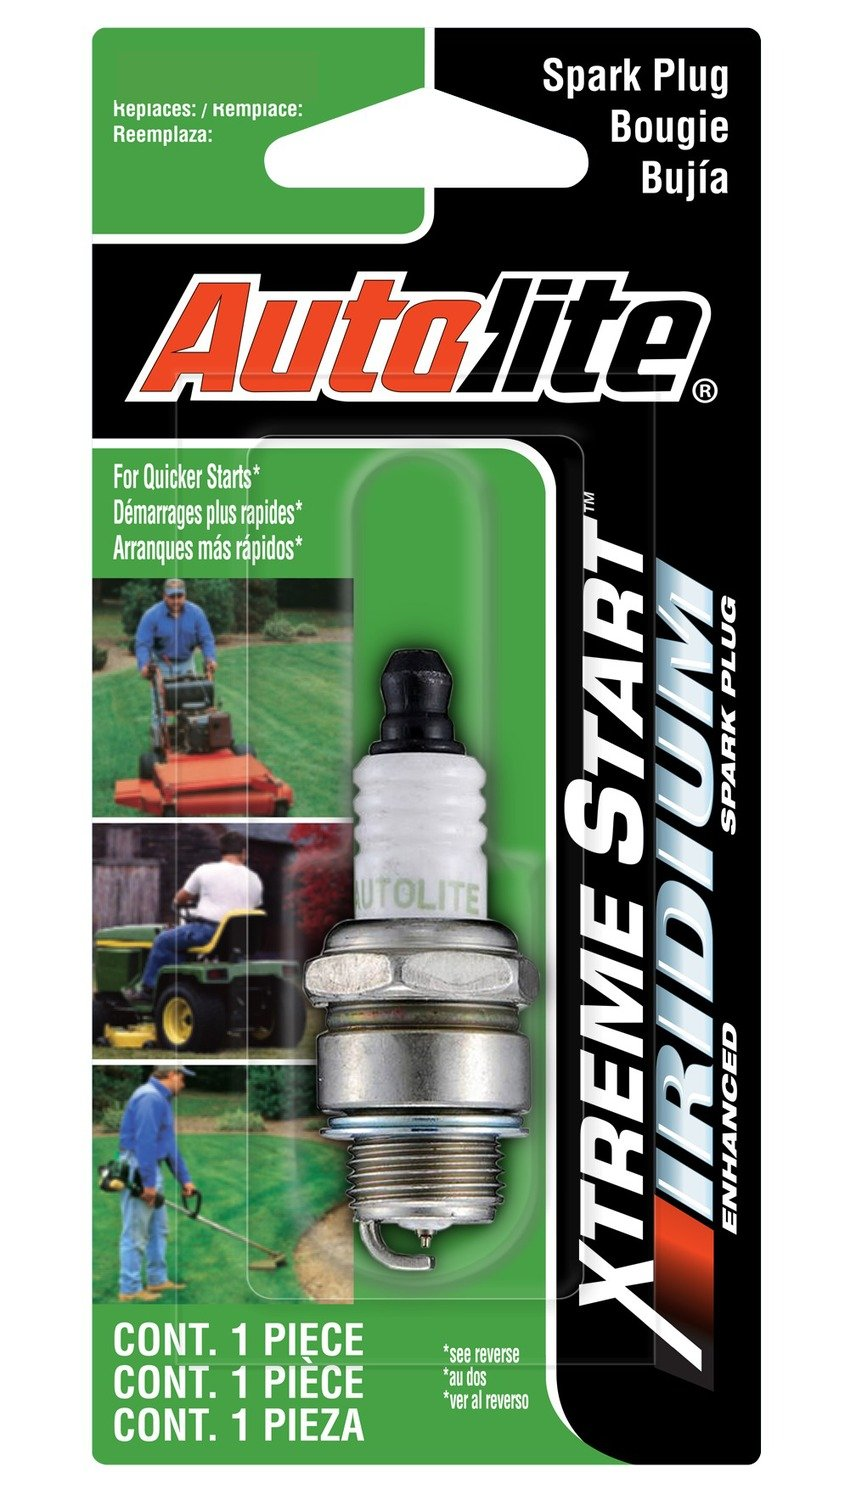 Amazon.com: Autolite XST4055DP Xtreme Start Iridium Lawn & Garden Spark Plug: Automotive